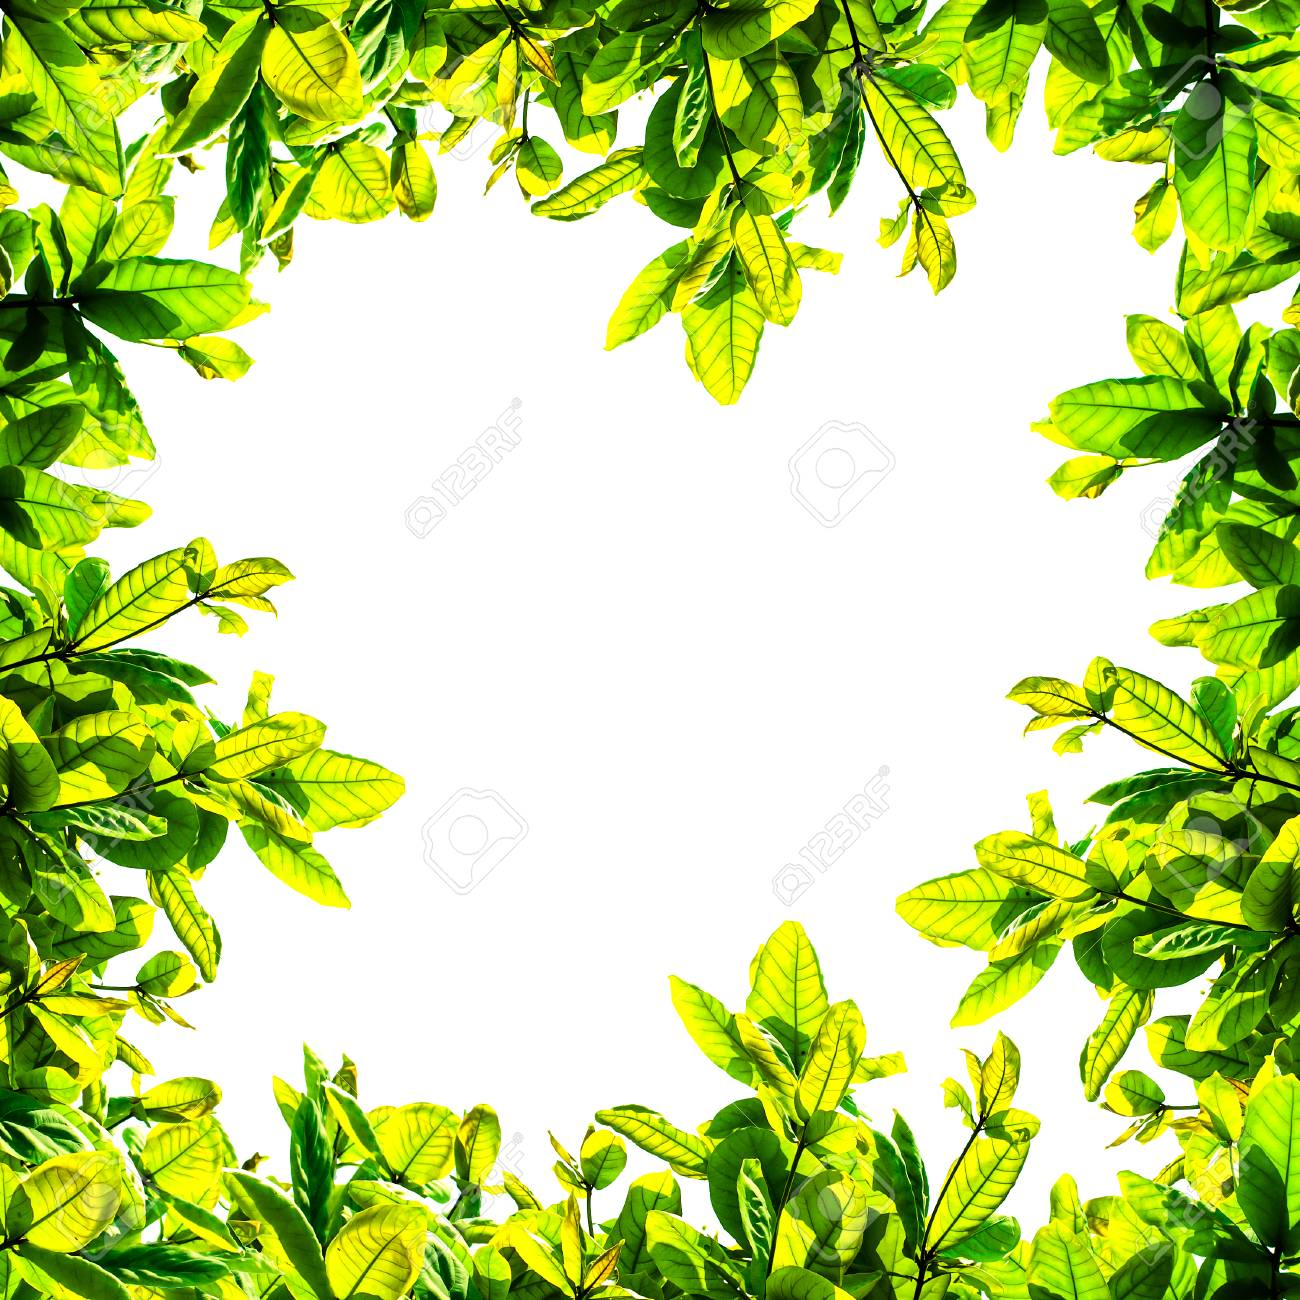 nature frame from green and yellow leaves on white background stock photo picture and royalty free image image 51058159 123rf com